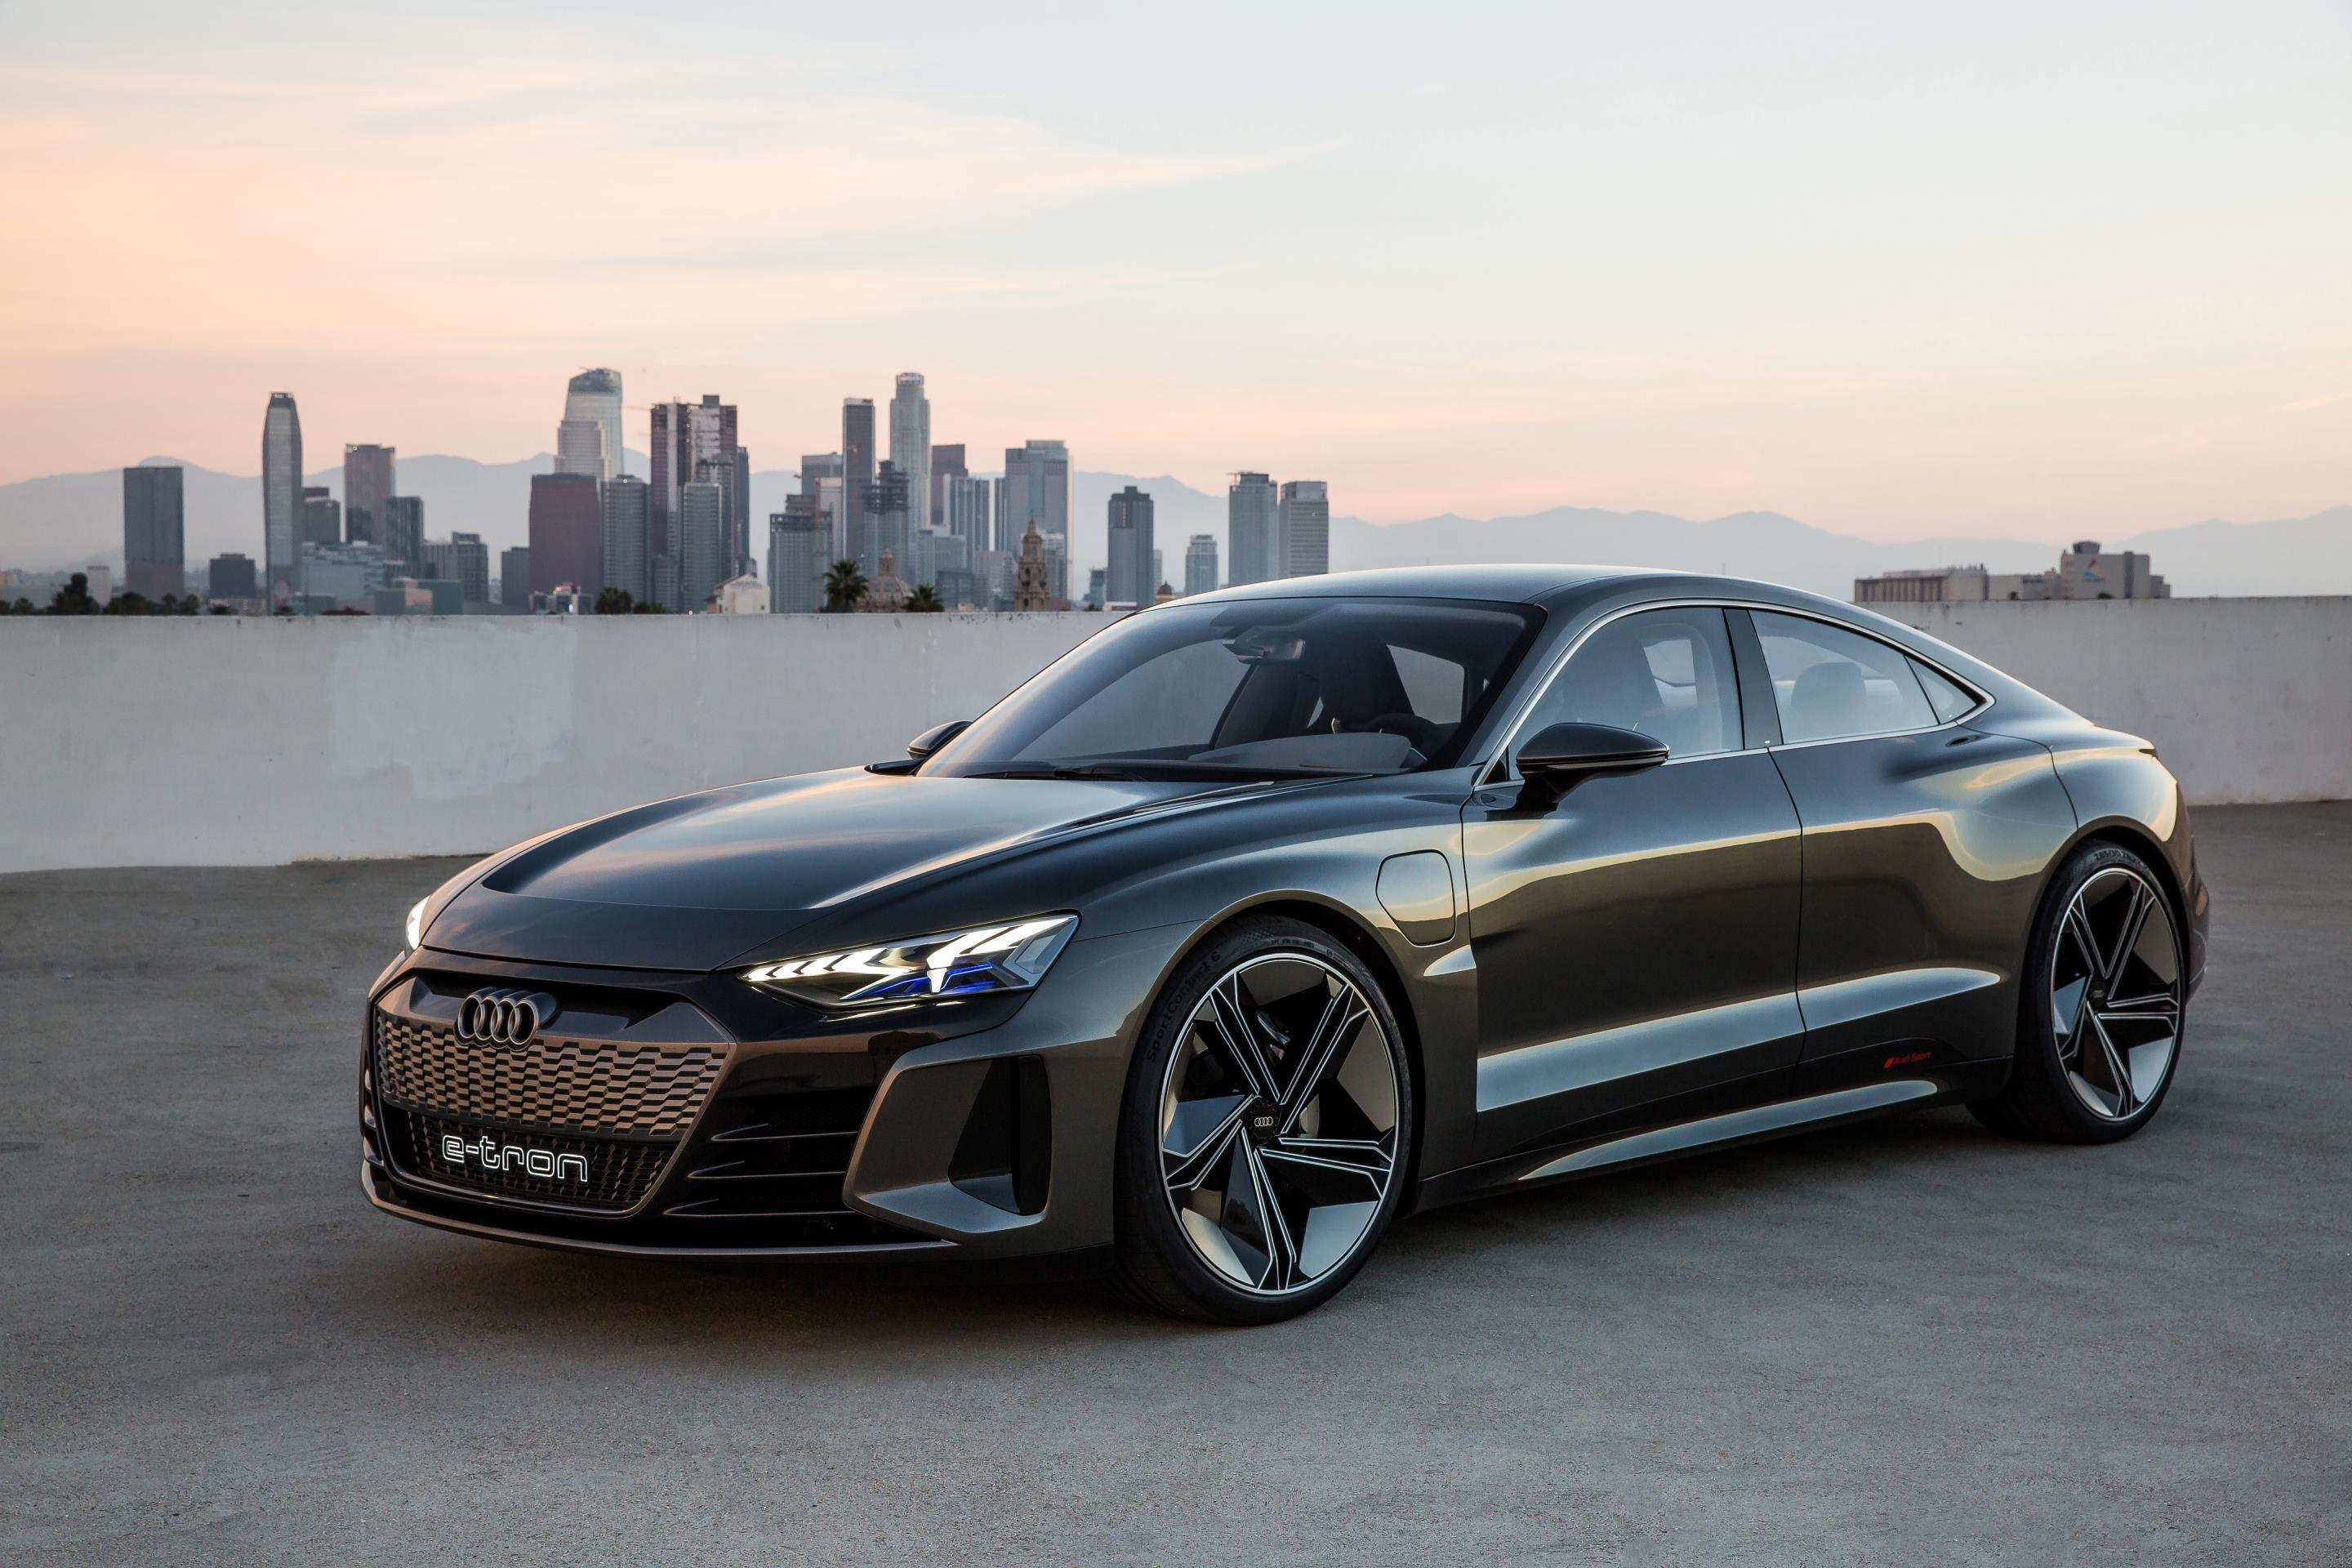 69 Great 2020 Audi Specs by 2020 Audi